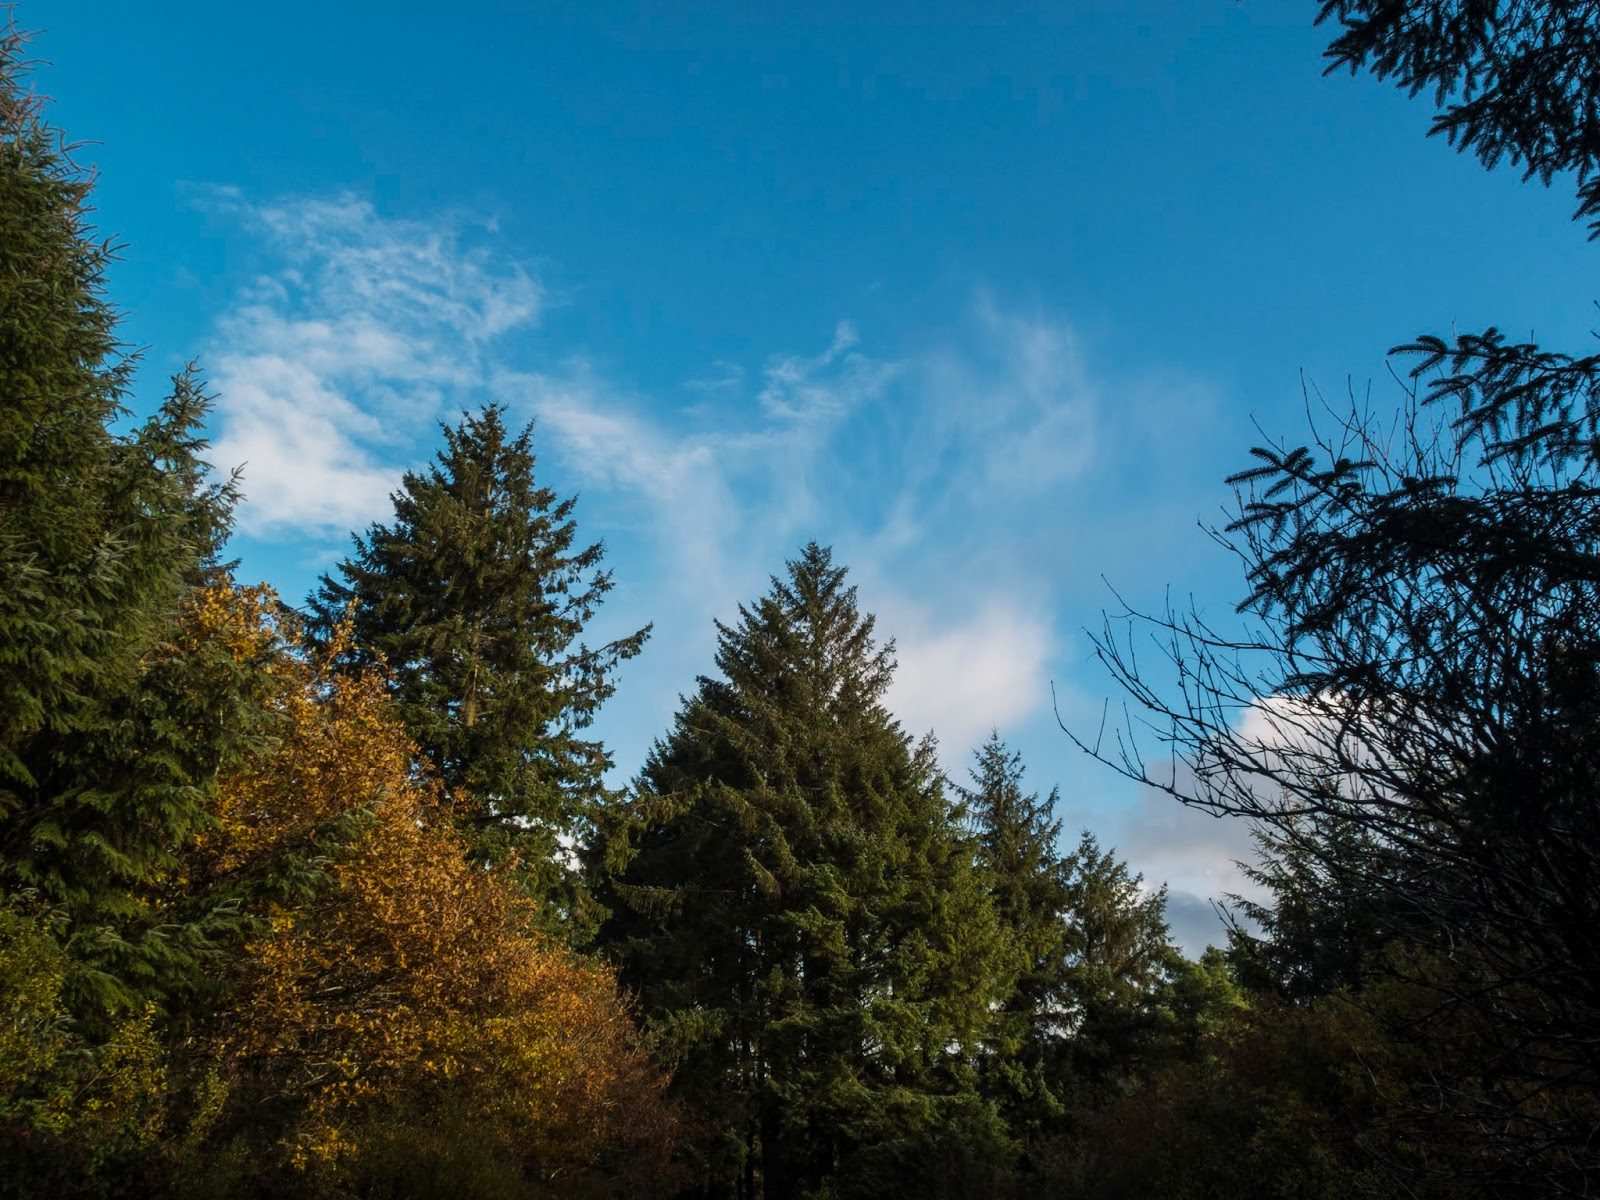 Green conifers and one golden deciduous tree in the sunlight with a blue sky overhead.